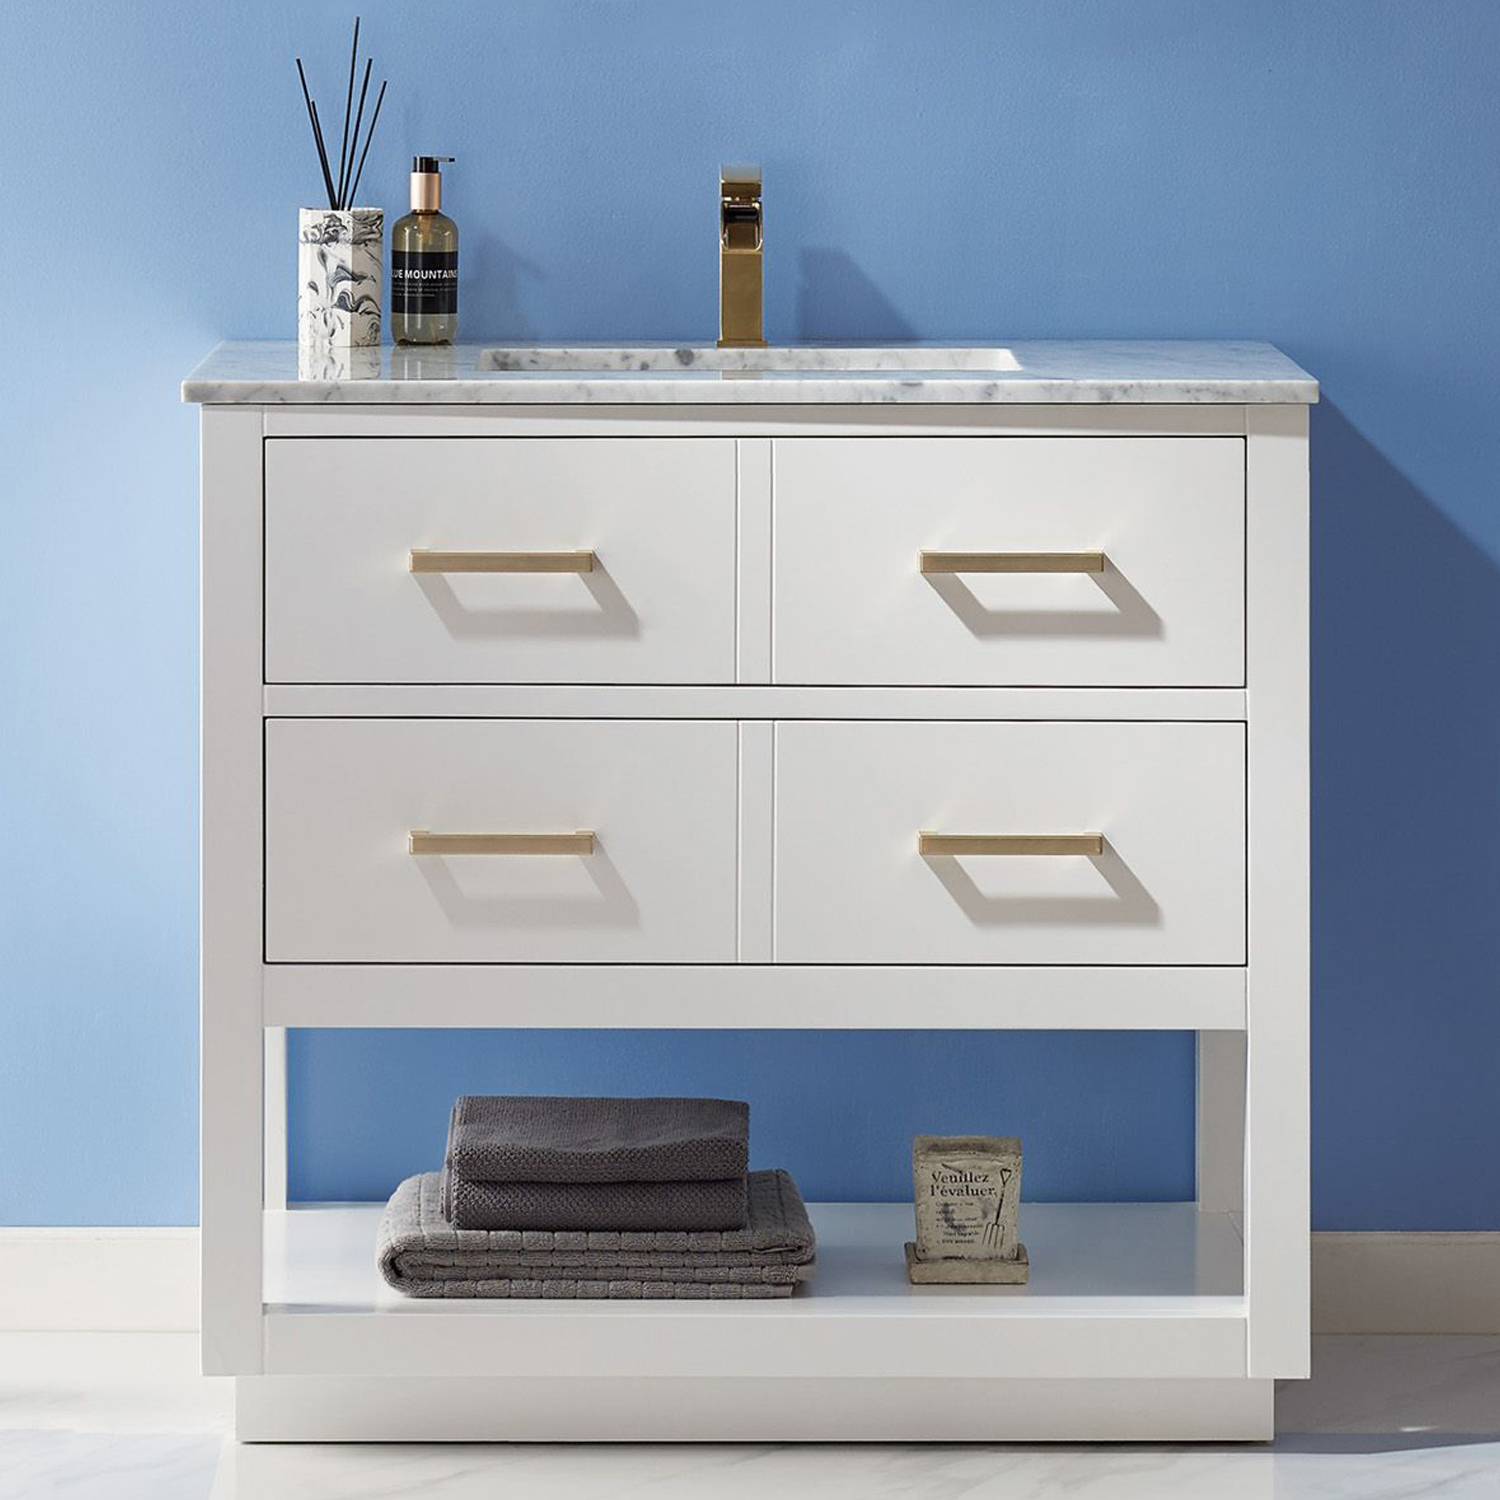 """Issac Edwards Collection 36"""" Single Bathroom Vanity Set in White and Carrara White Marble Countertop with Mirror Option"""